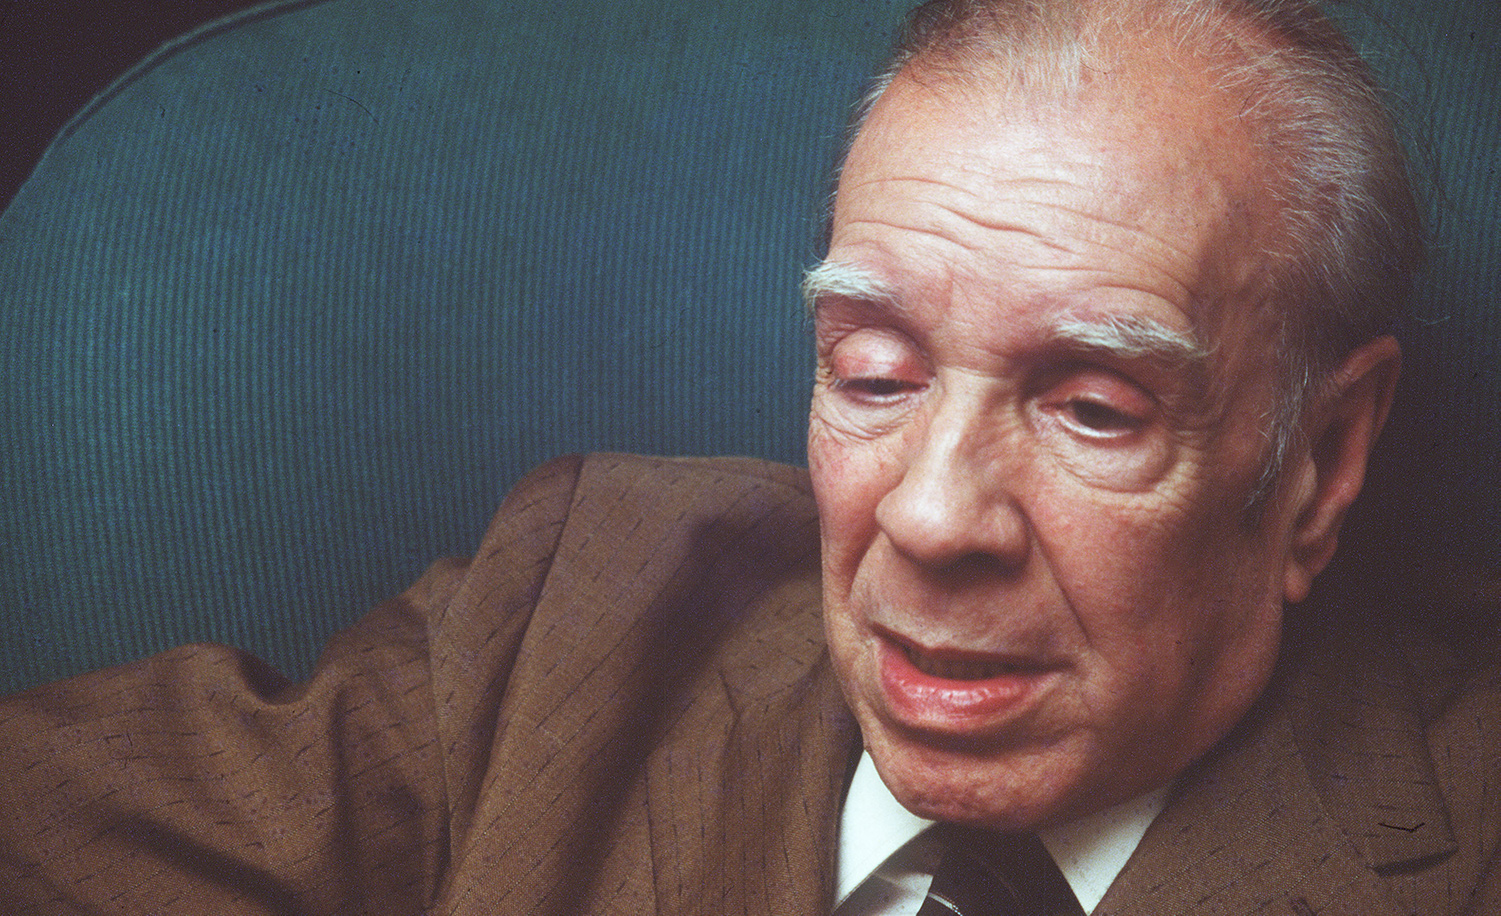 Jorge Luis Borges. Raul Urbina/Cover/Getty Images.